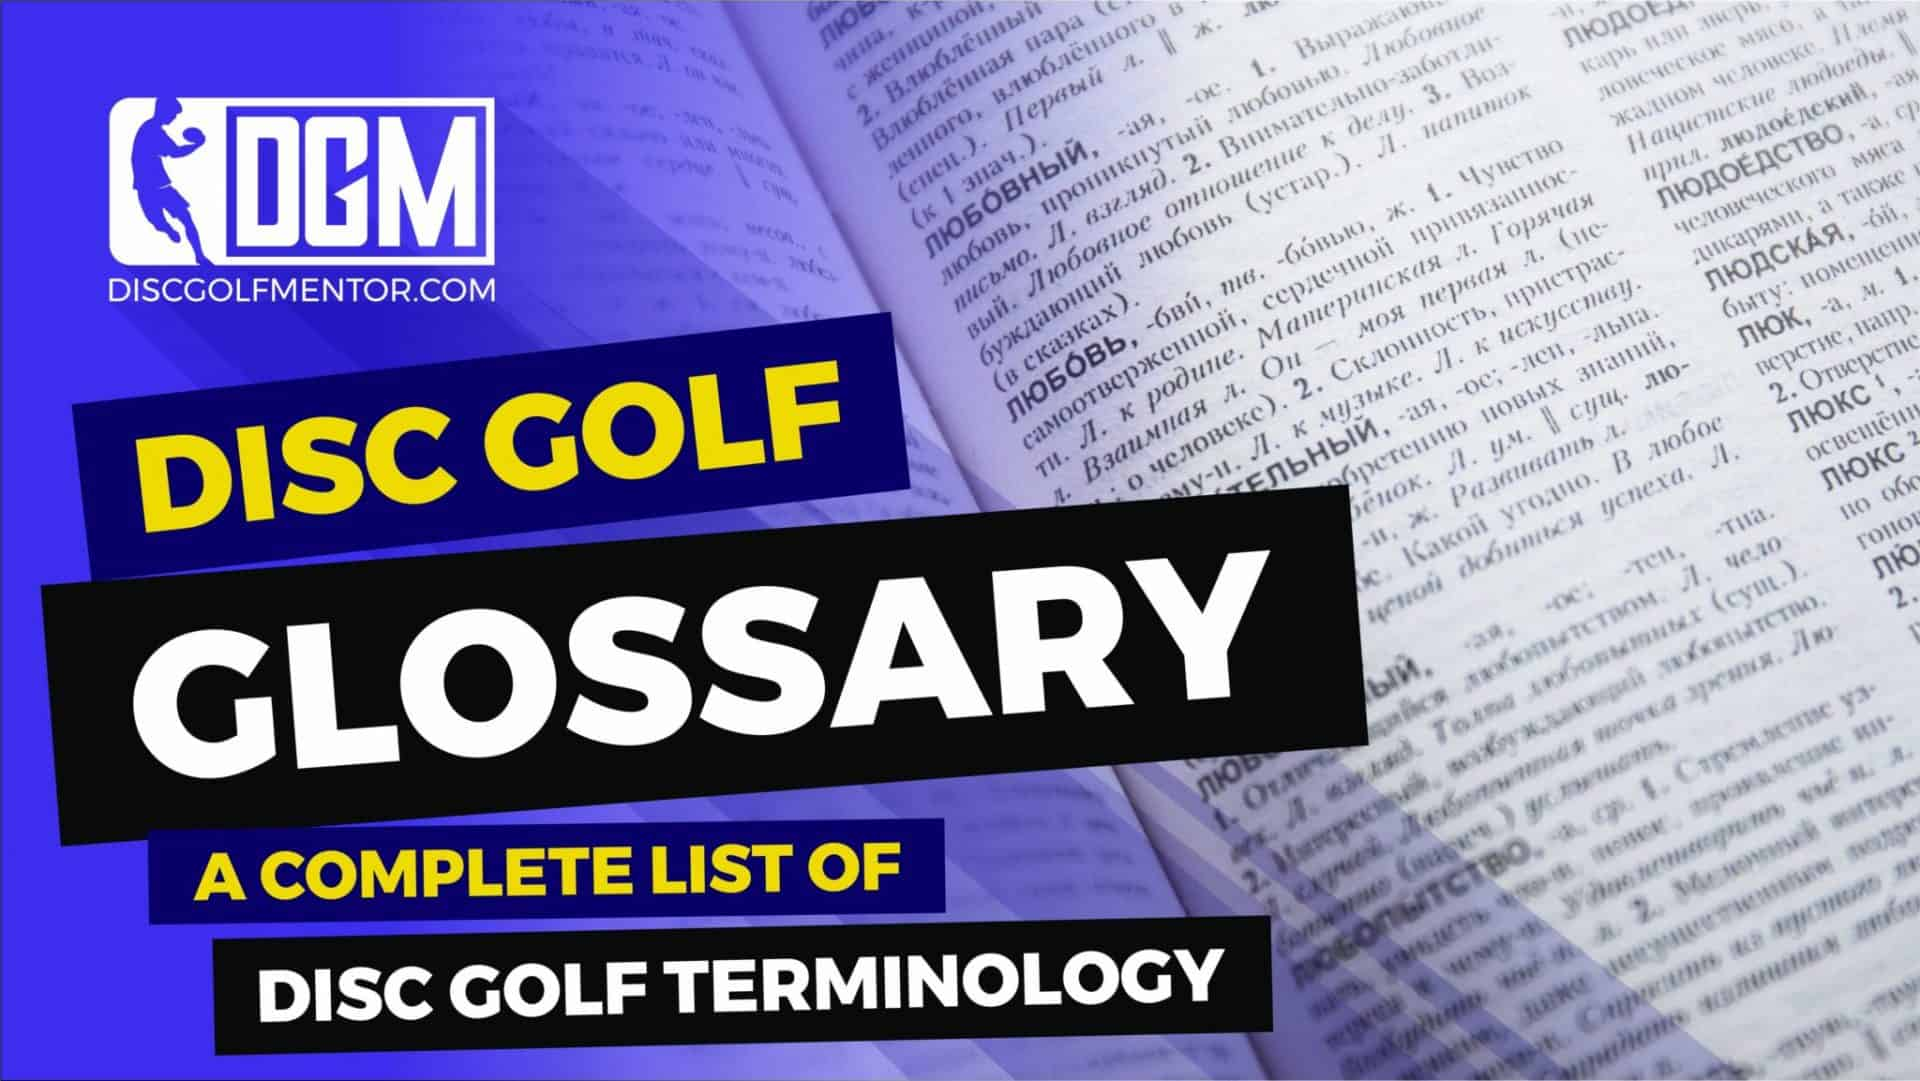 Disc Golf Glossary – A Complete List of Disc Golf